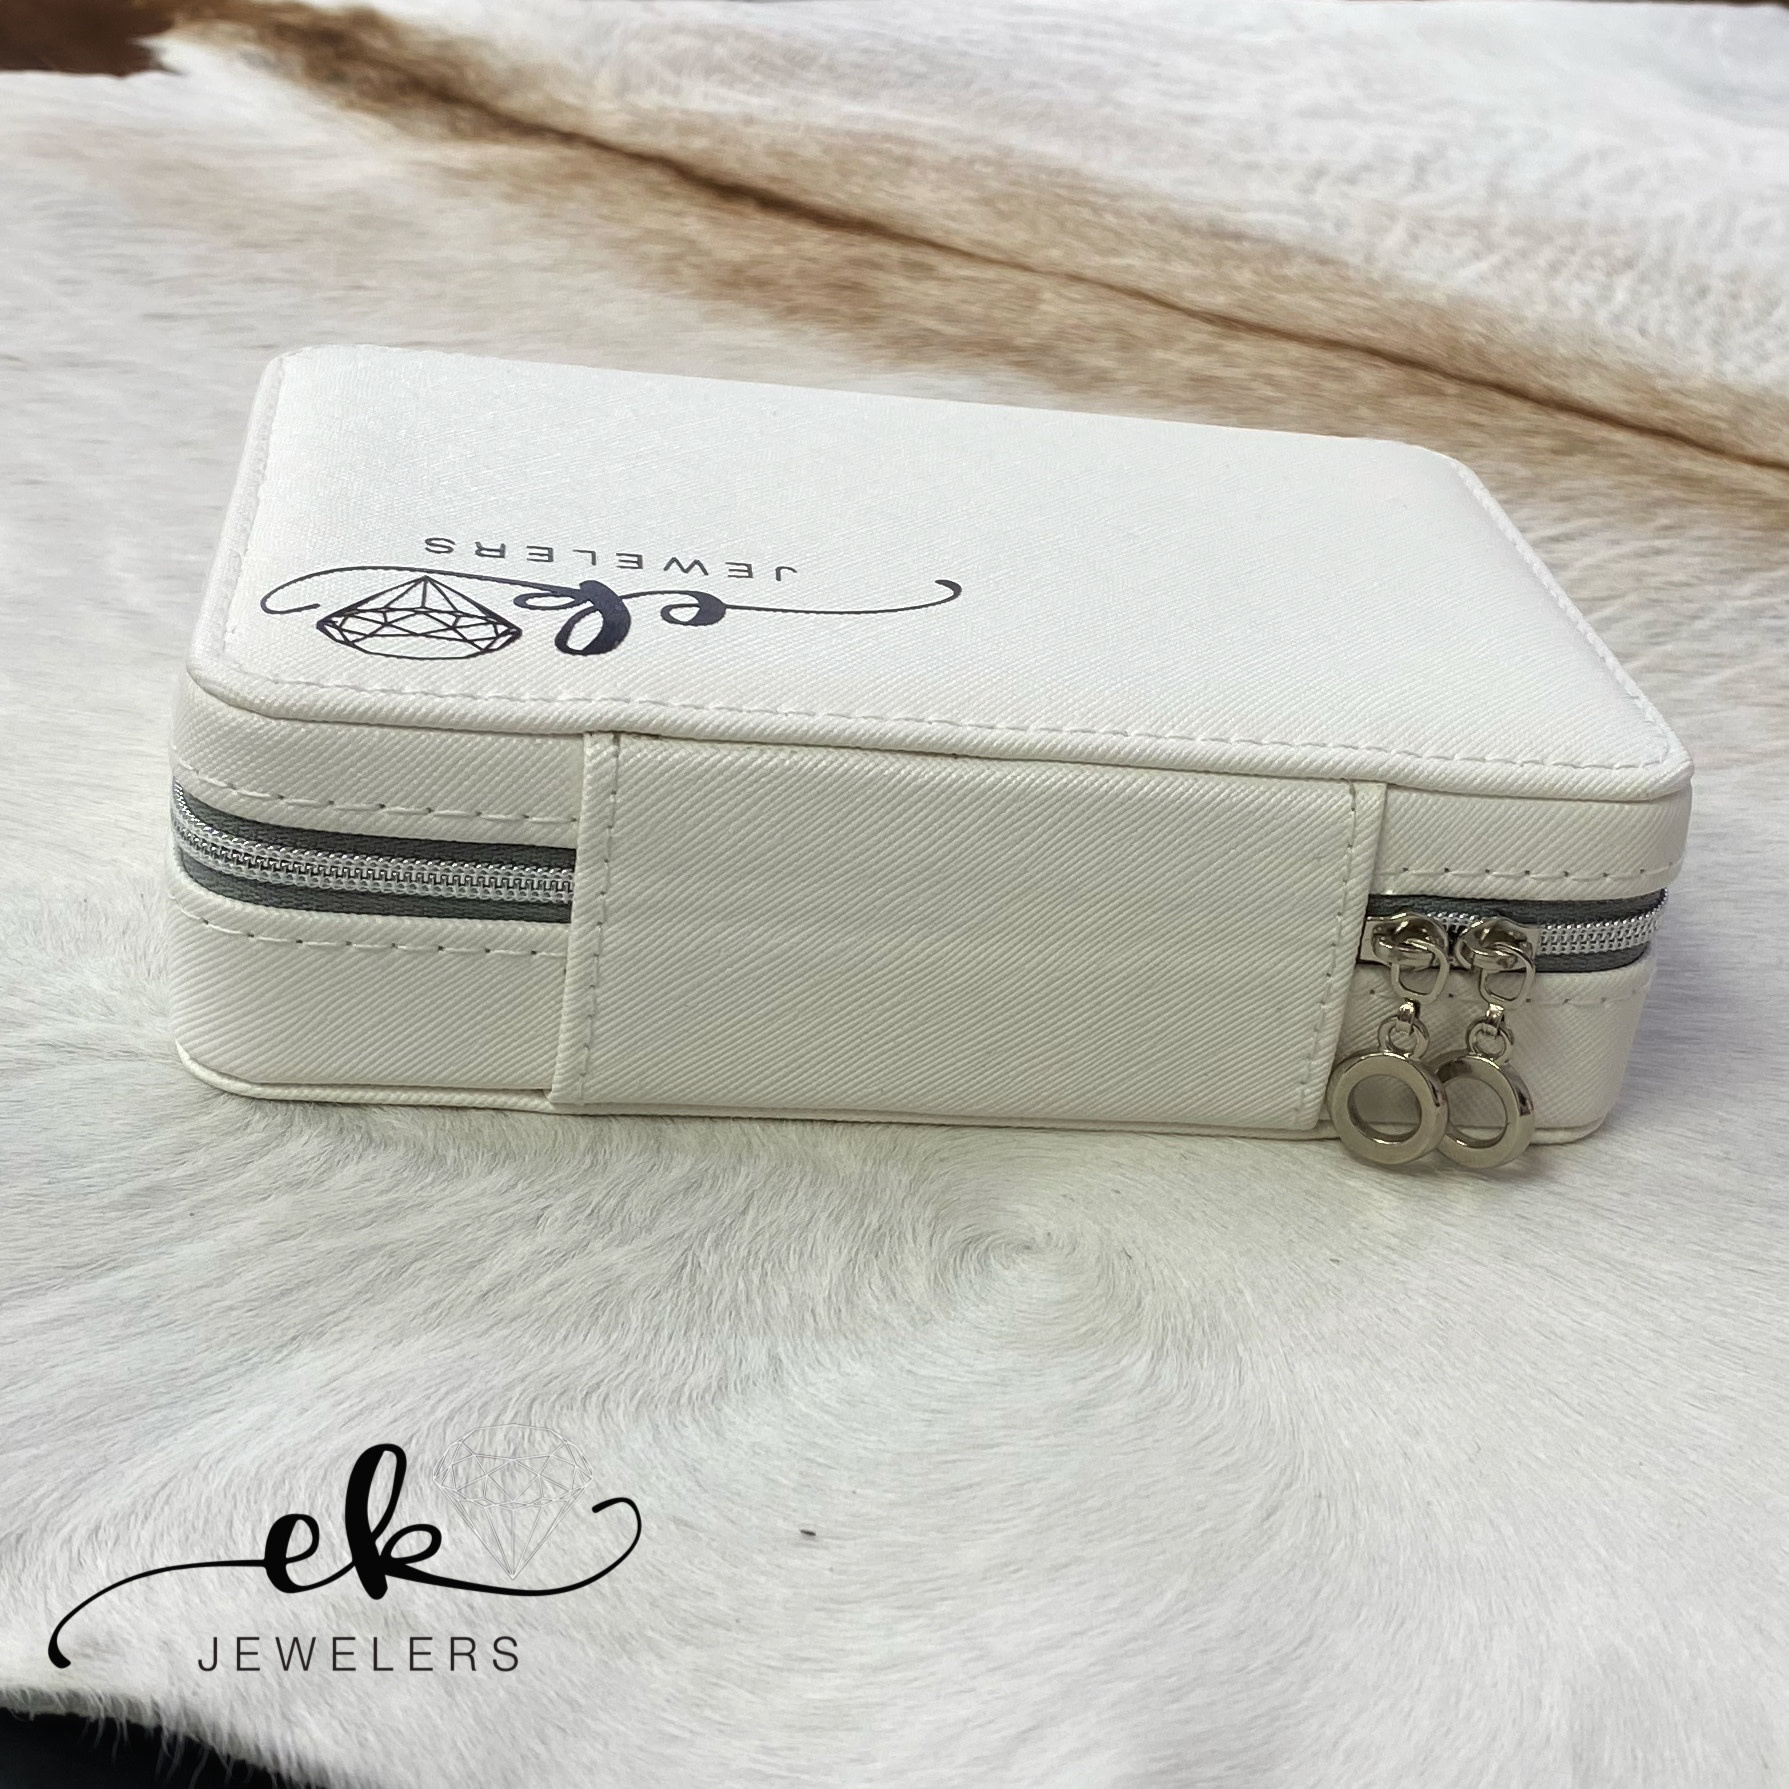 Travel Jewelry Box with a Zipper